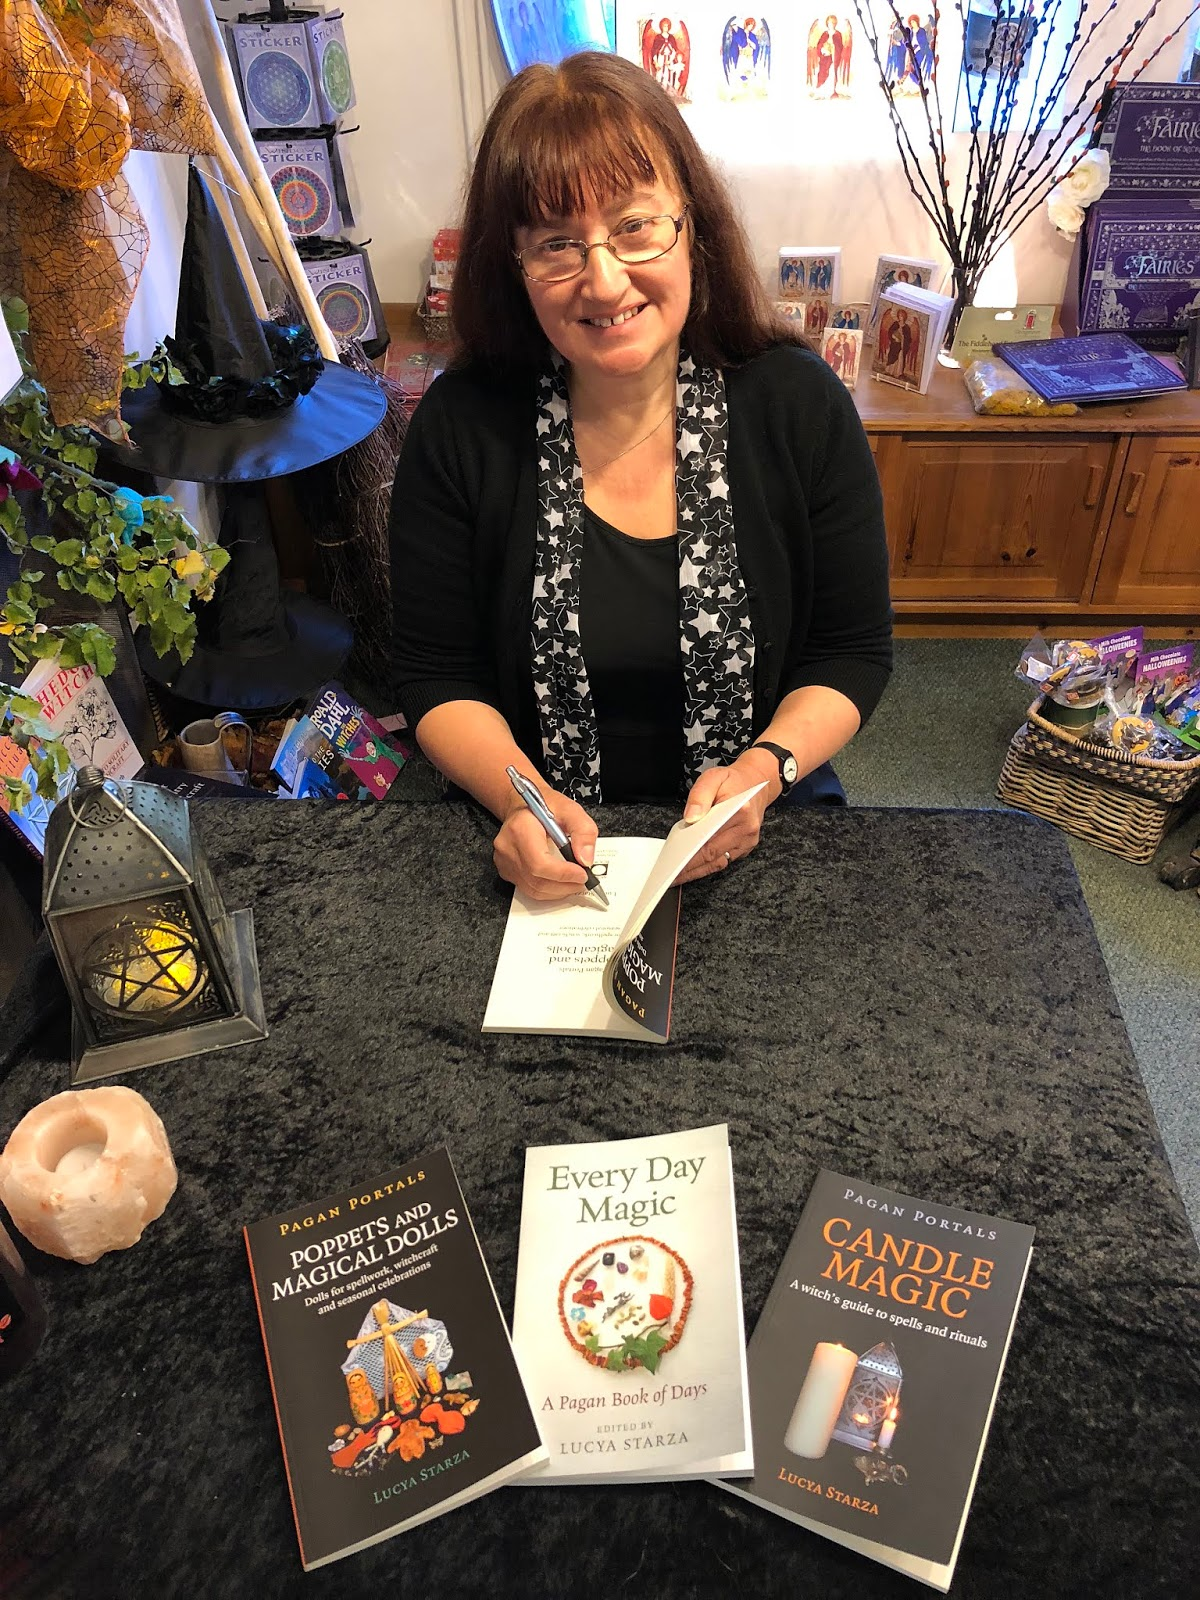 A bad witch's blog: Book News: Candles, Poppets & Every Day